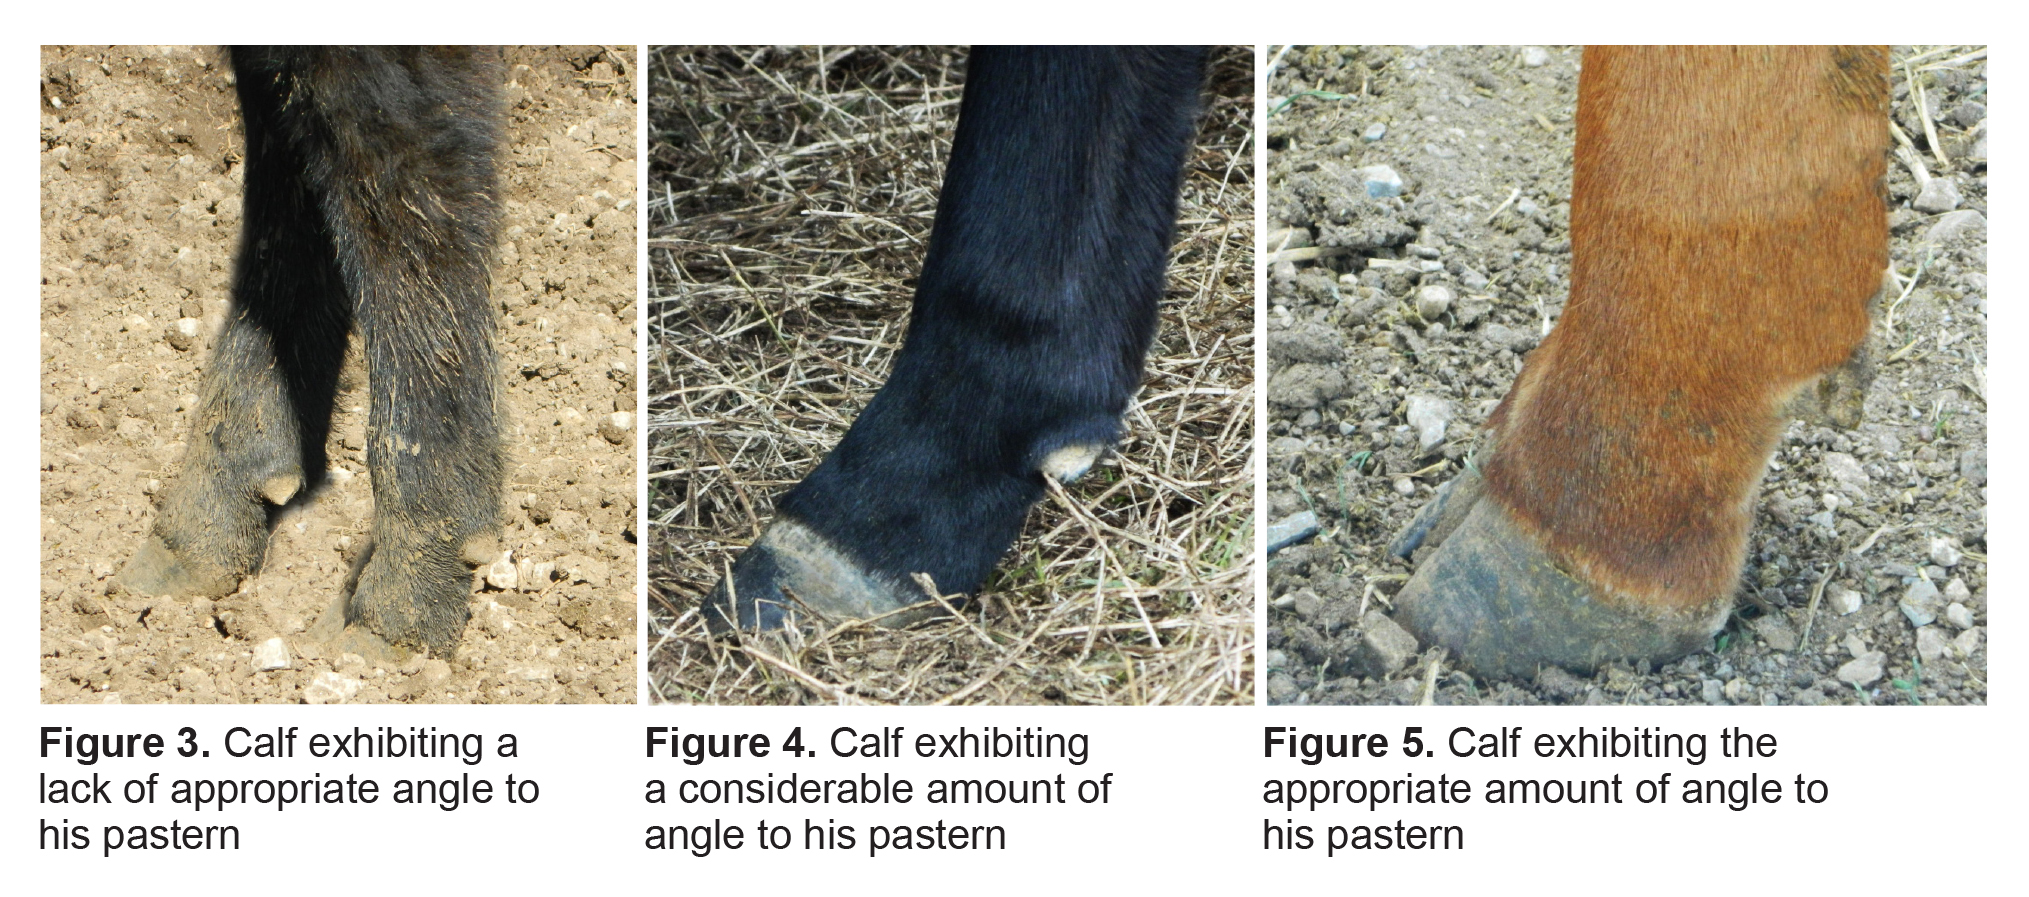 Figure 3. Calf exhibiting a lack of appropriate angle to his pastern. Figure 4. Calf exhibiting a considerable amount of angle to his pastern. Figure 5. Calf exhibiting the appropriate amount of angle to his pastern.